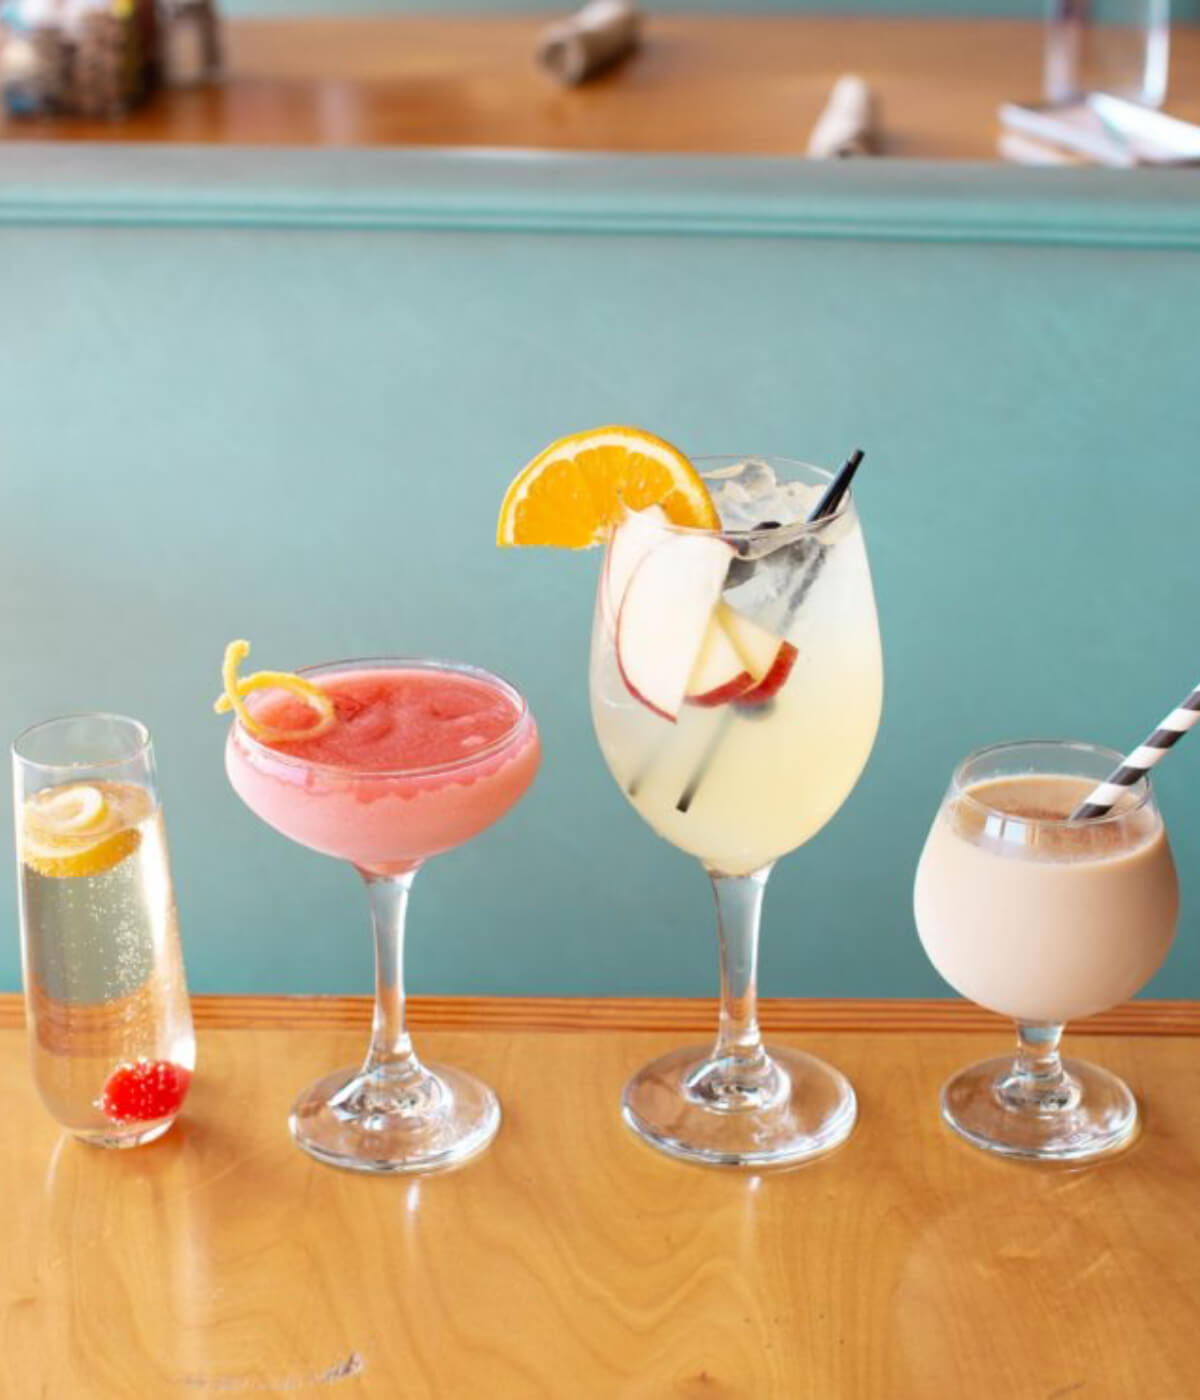 6 Cocktail Recipes to Enjoy on Sunny Days